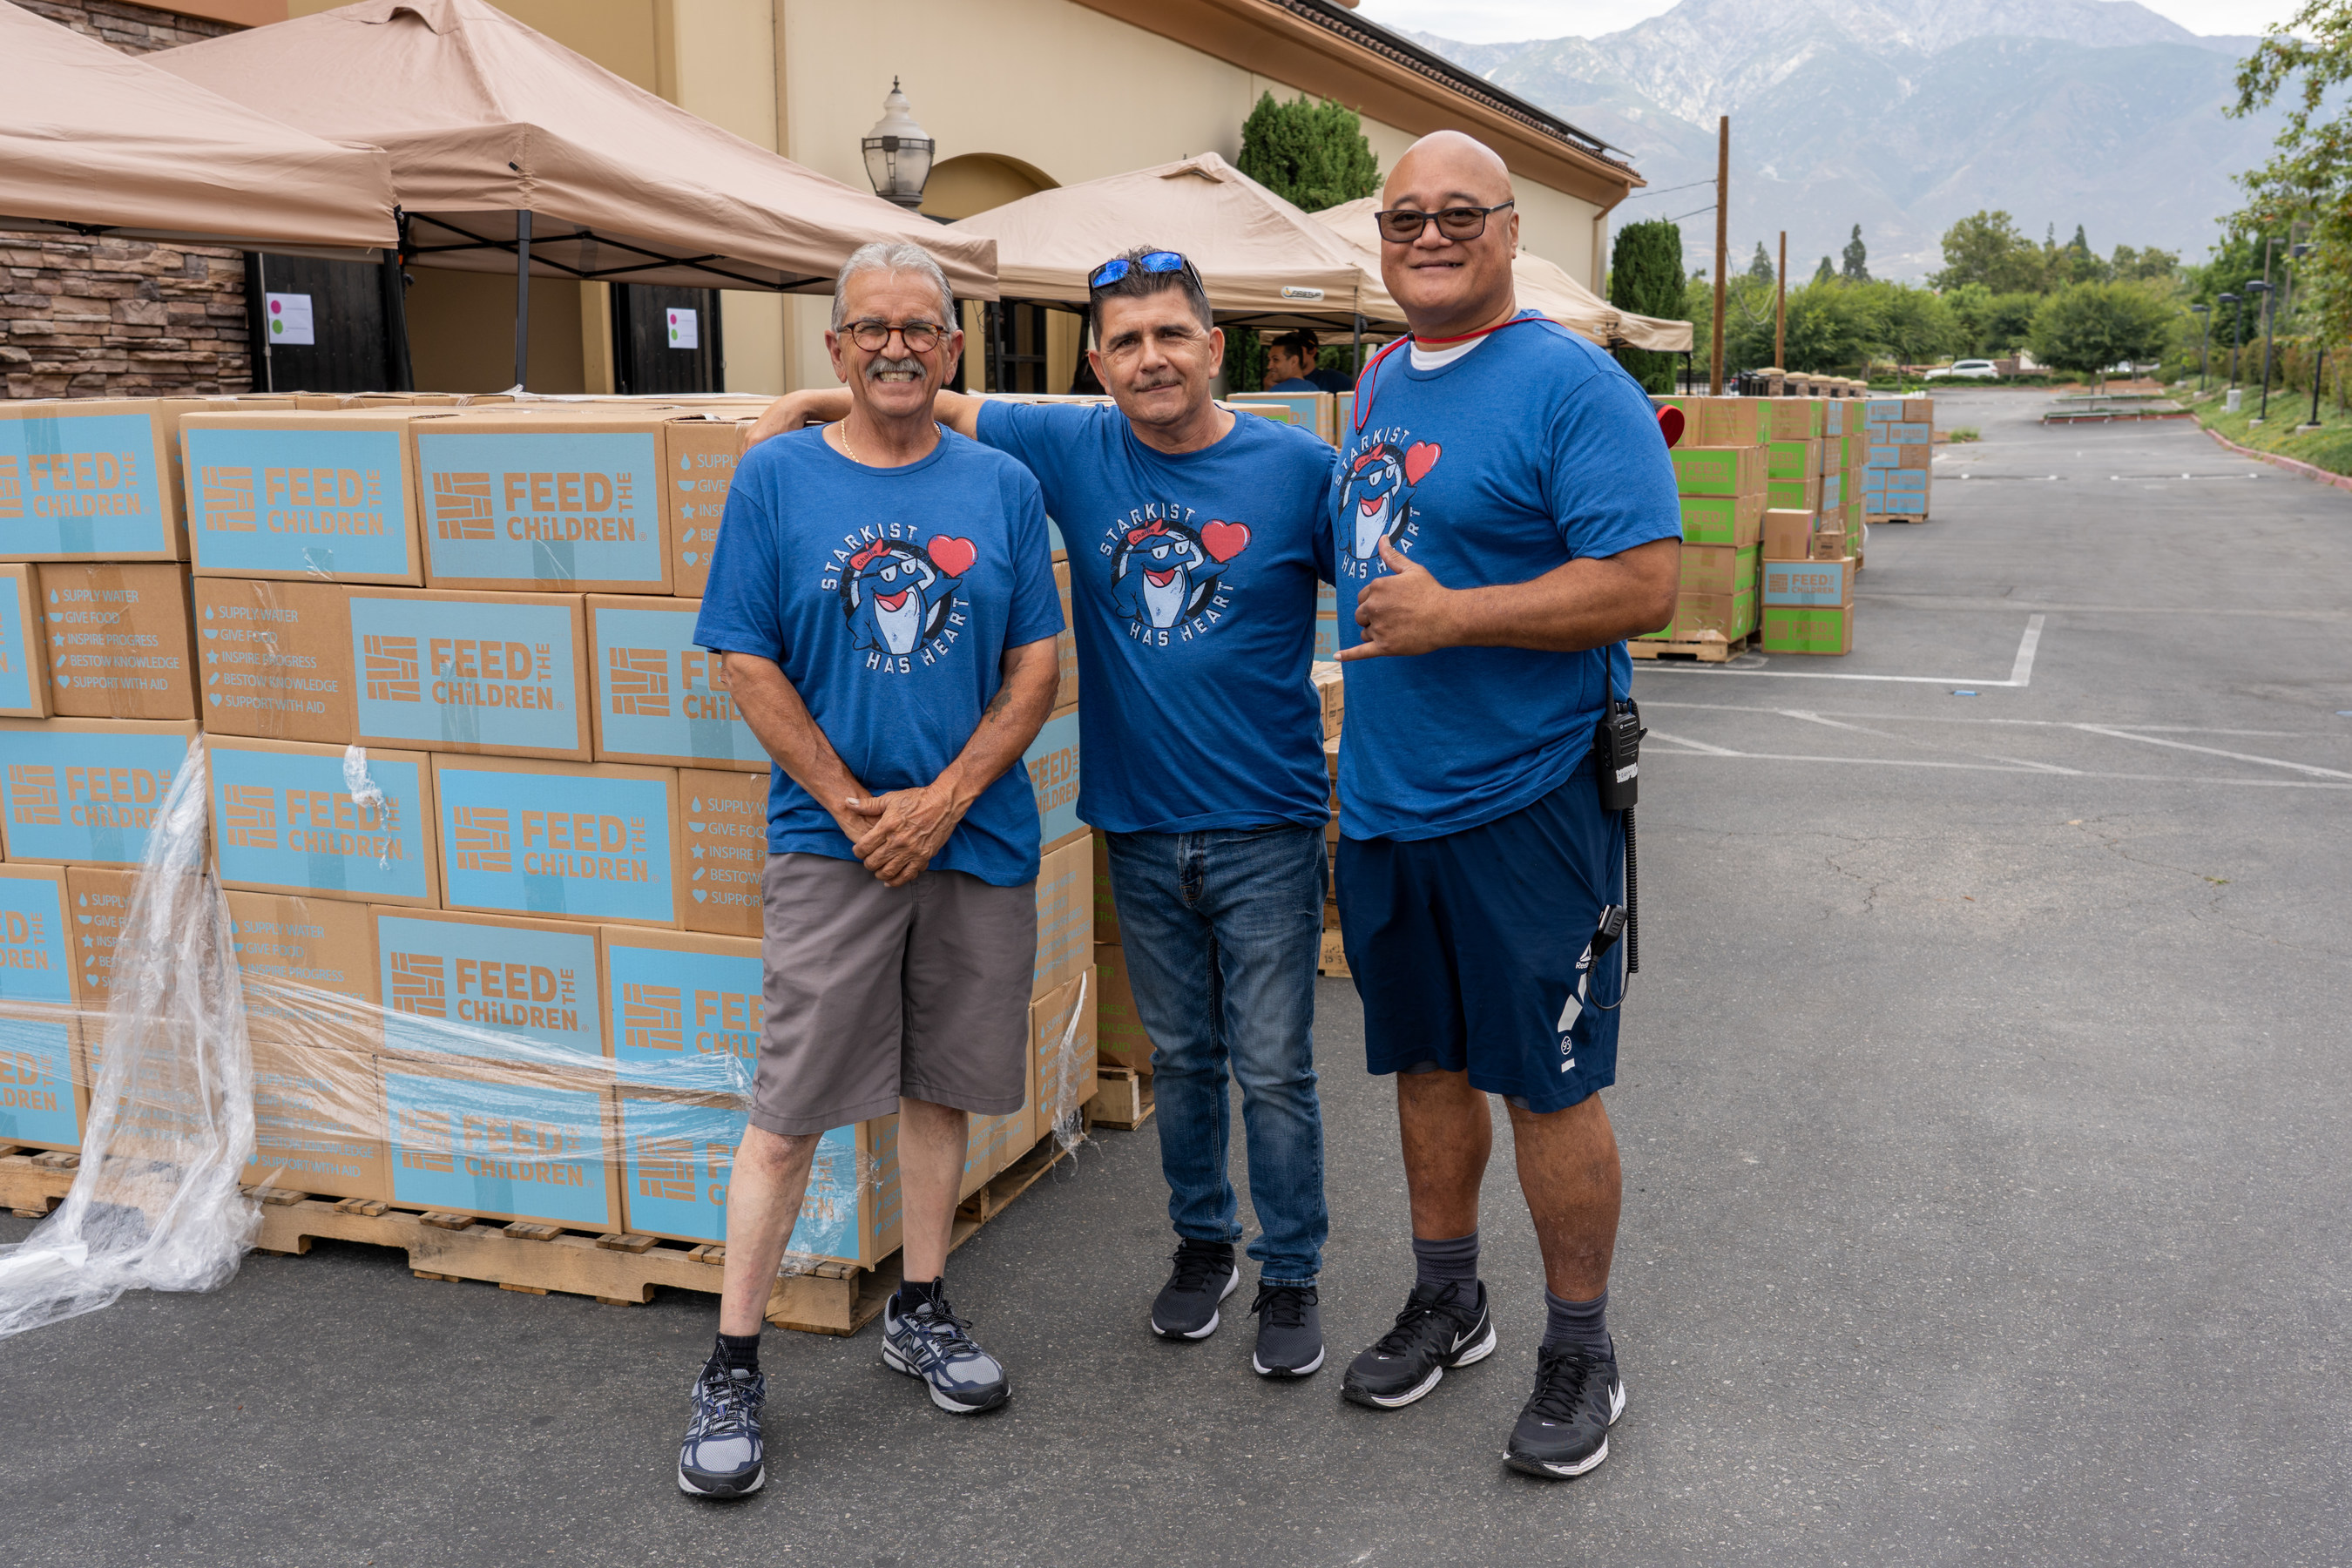 StarKist to Match First $25,000 Donated to Feed the Children to Help Those Impacted by Hurricane